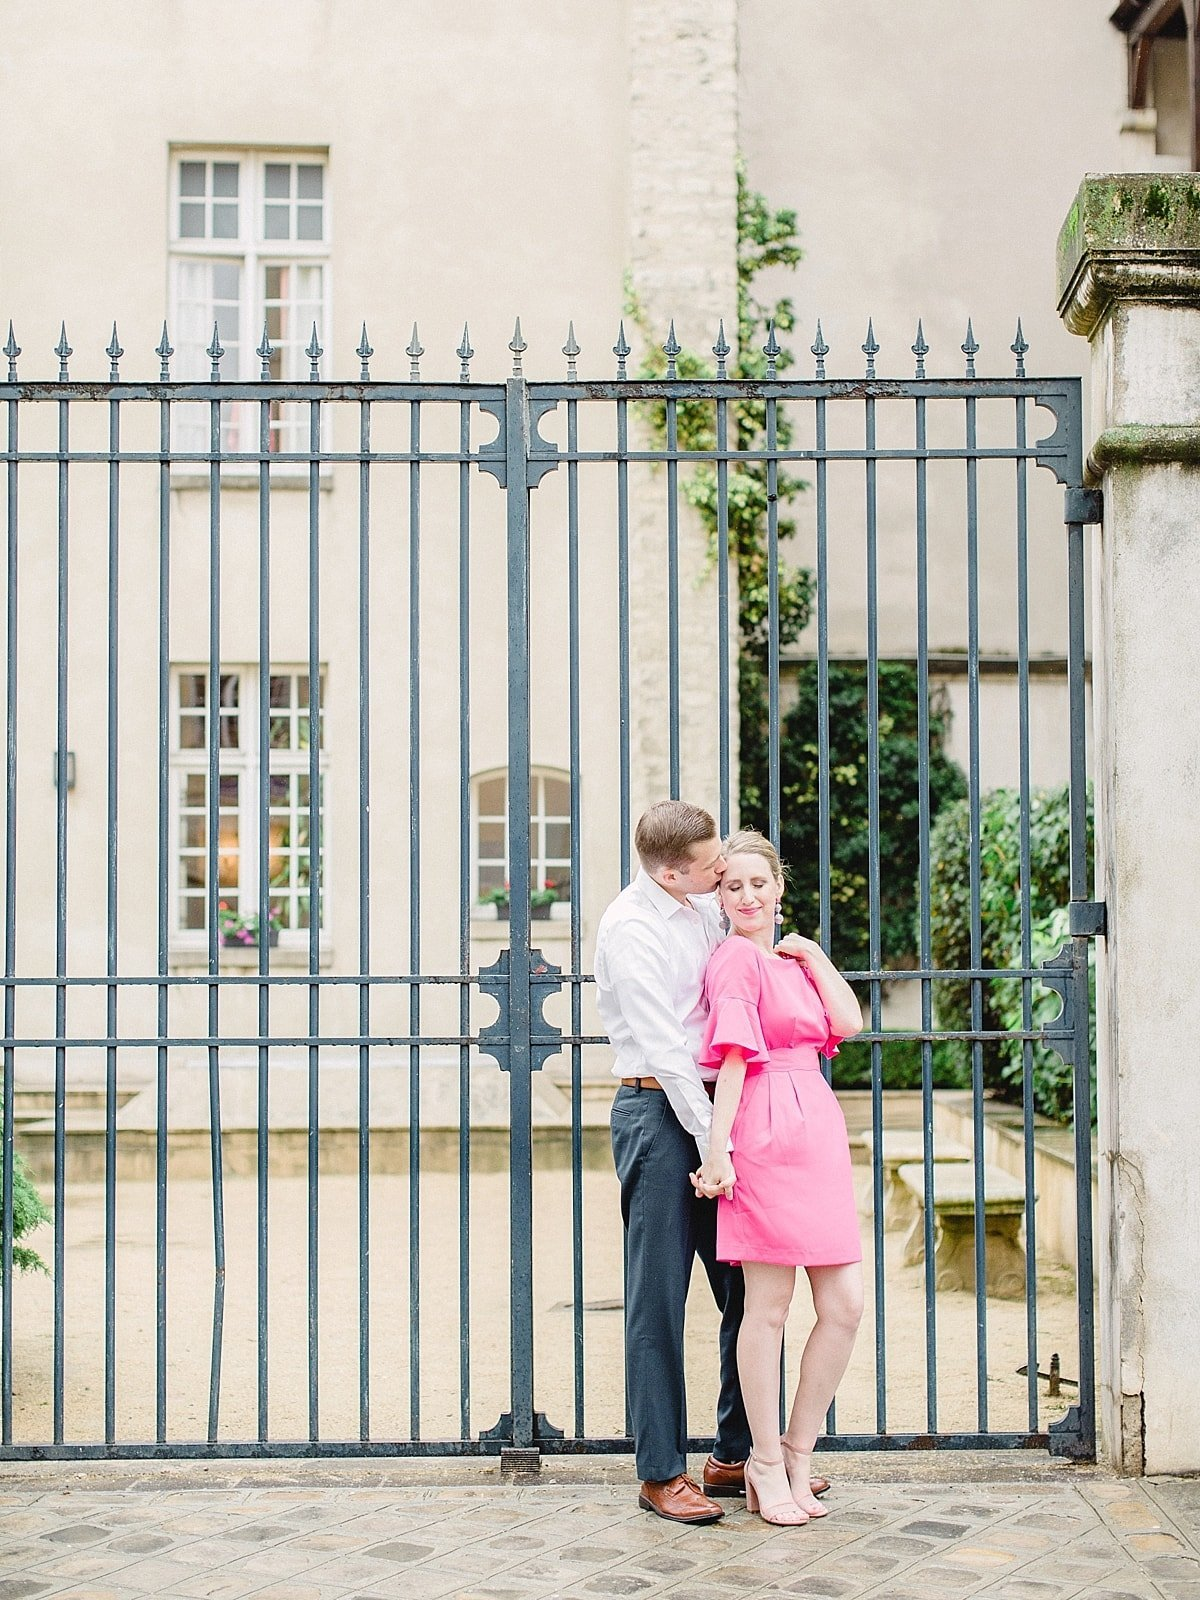 paris-photo-session-anniversary-alicia-yarrish-photography_39